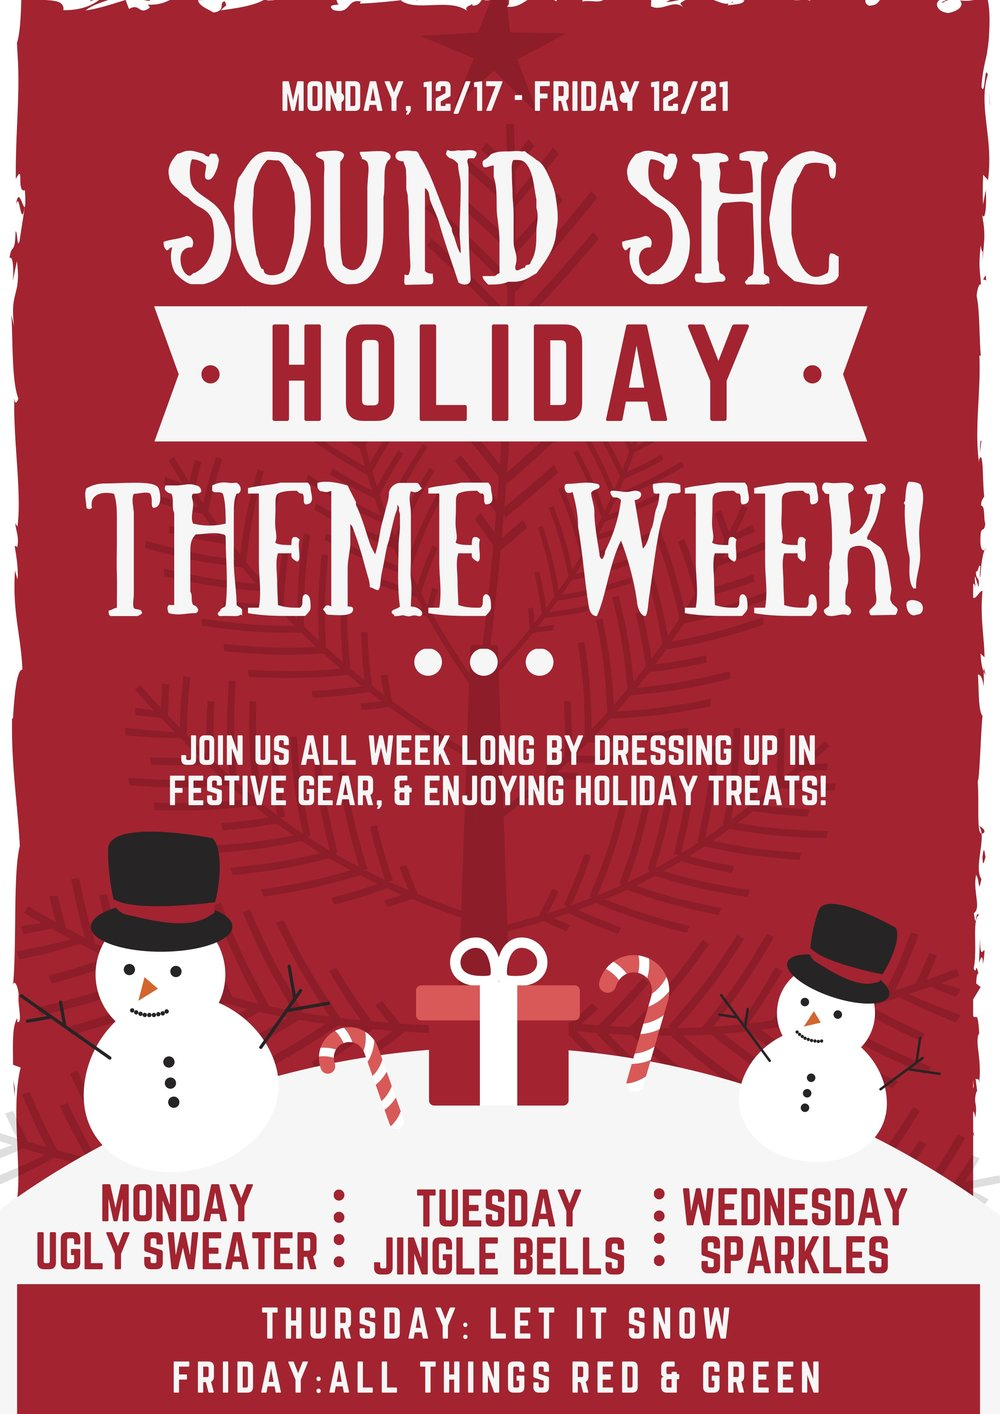 sound_holiday_theme_week